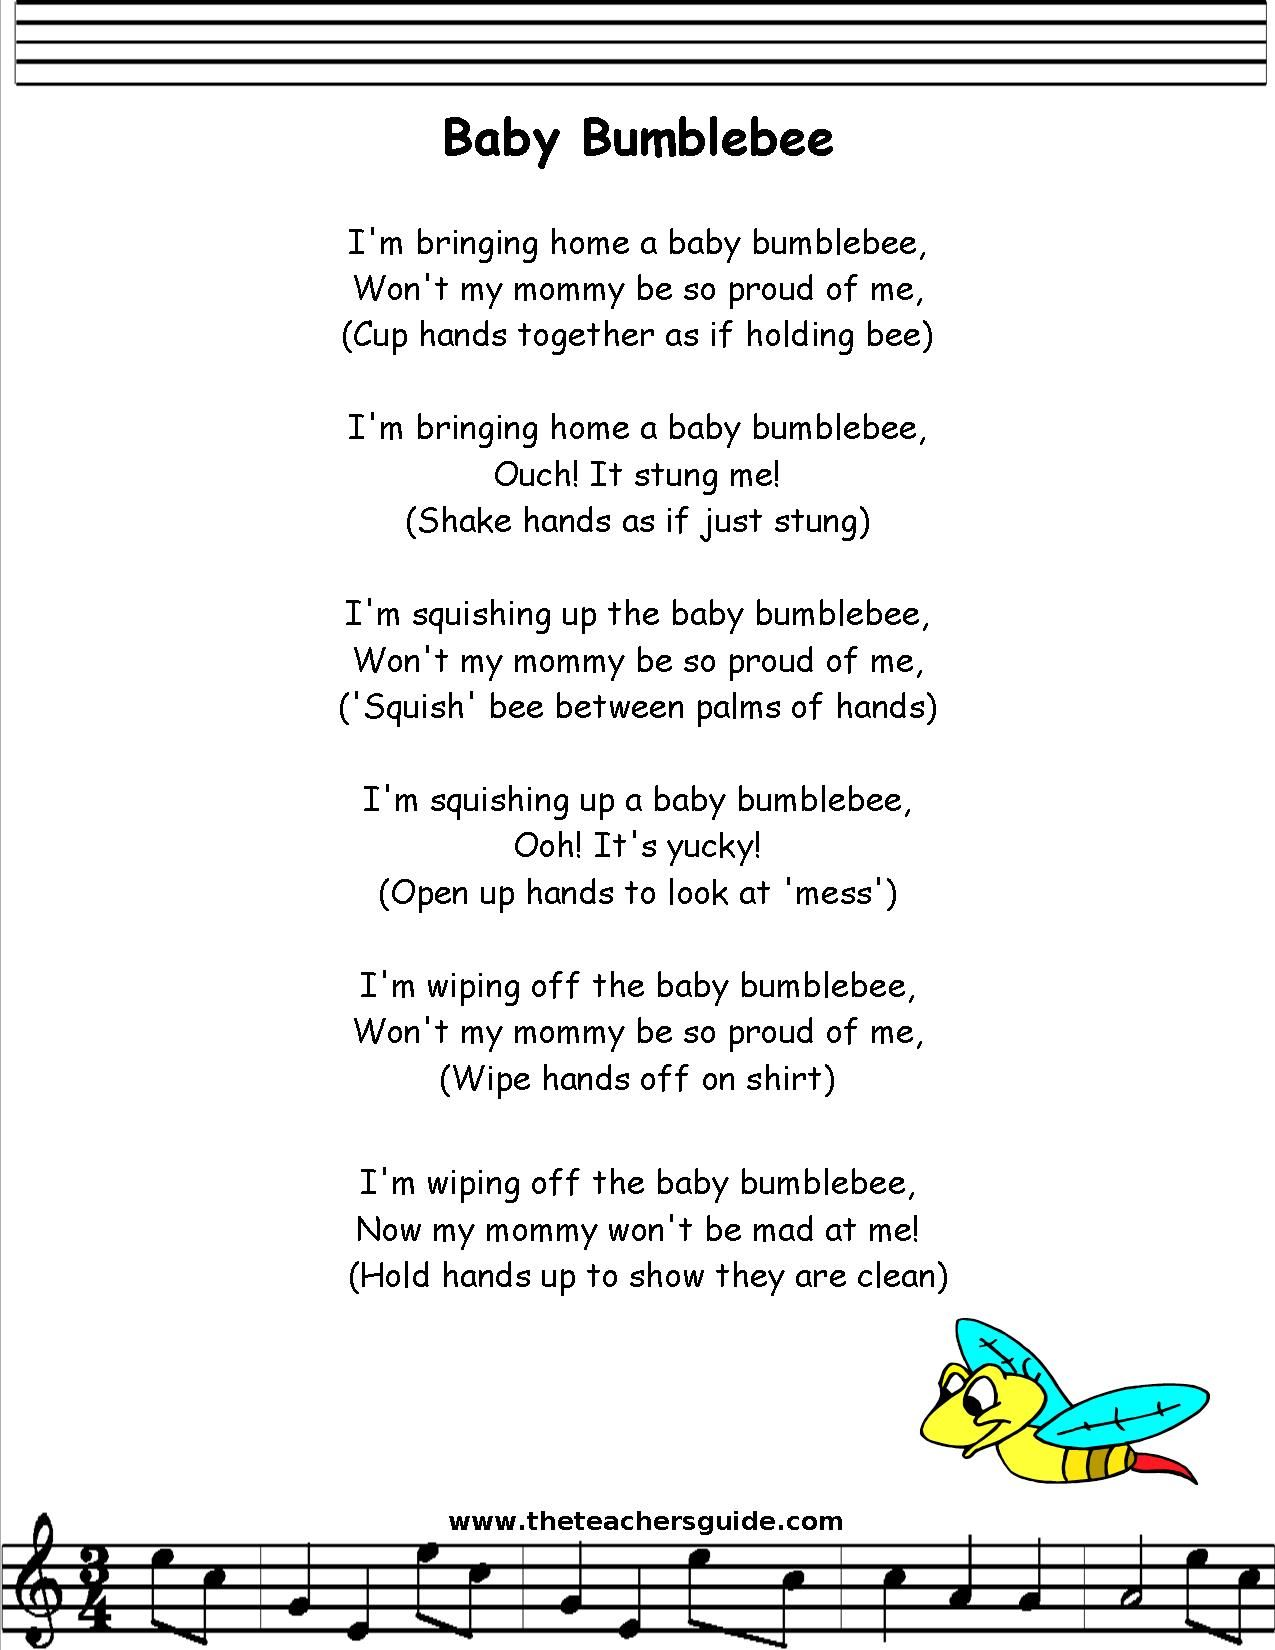 Who Stole The Cookie From The Cookie Jar Lyrics Amusing Babybumble Bee Lyrics Printout  Kids Stuff  Pinterest  Bees Review